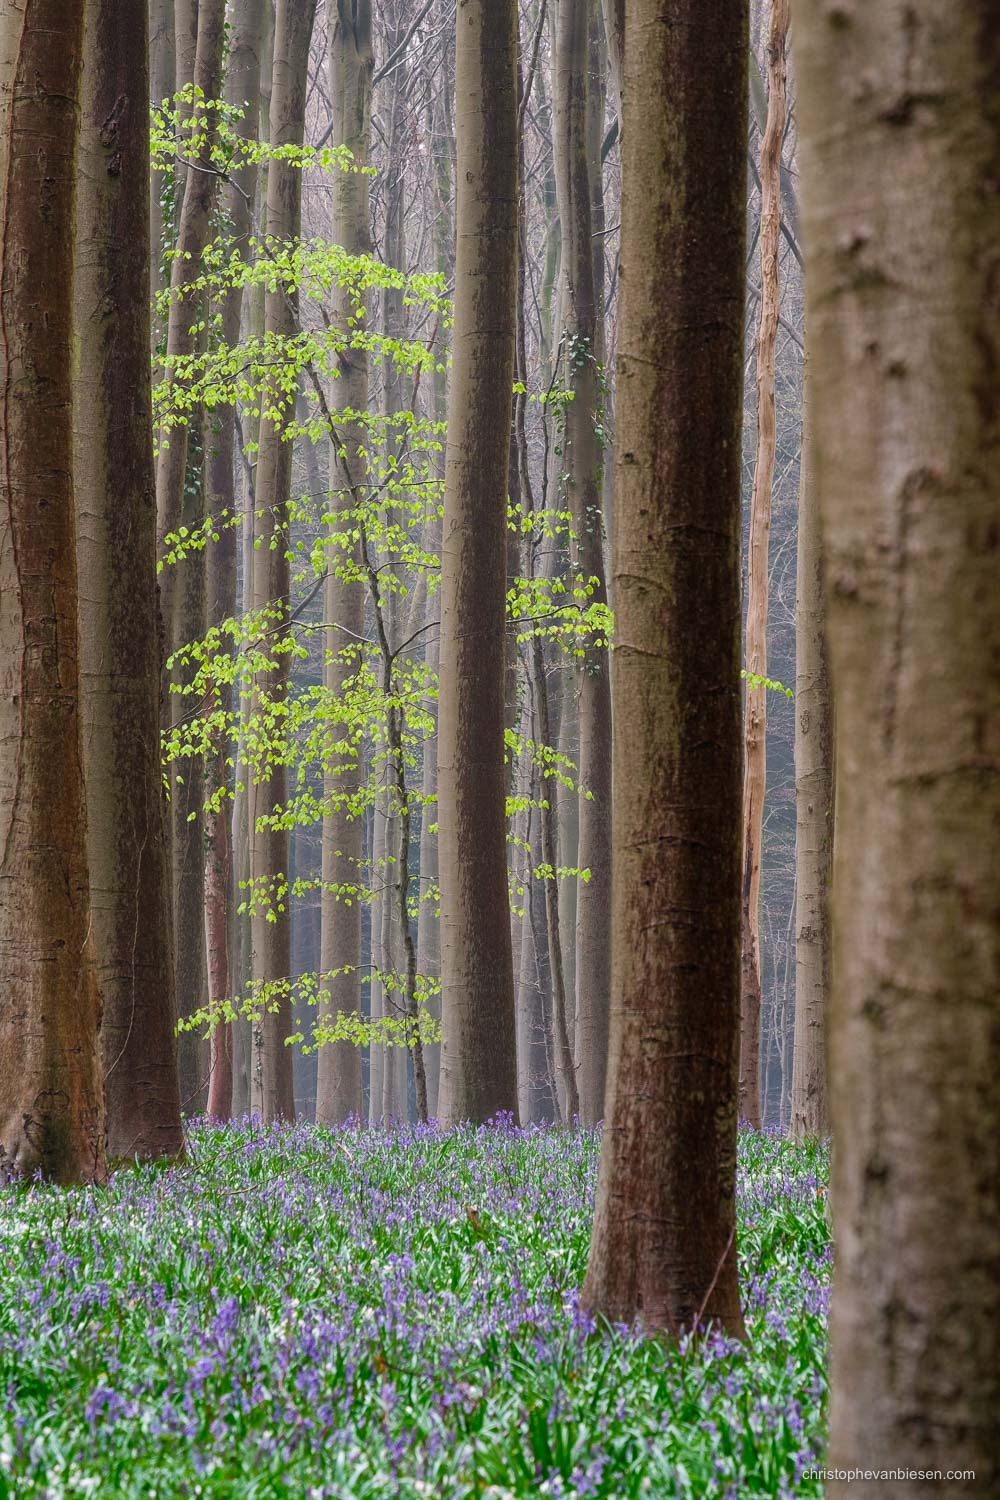 Hallerbos - Belgium - A young beech tree in the distance in Belgium's blue forest - Early Rise